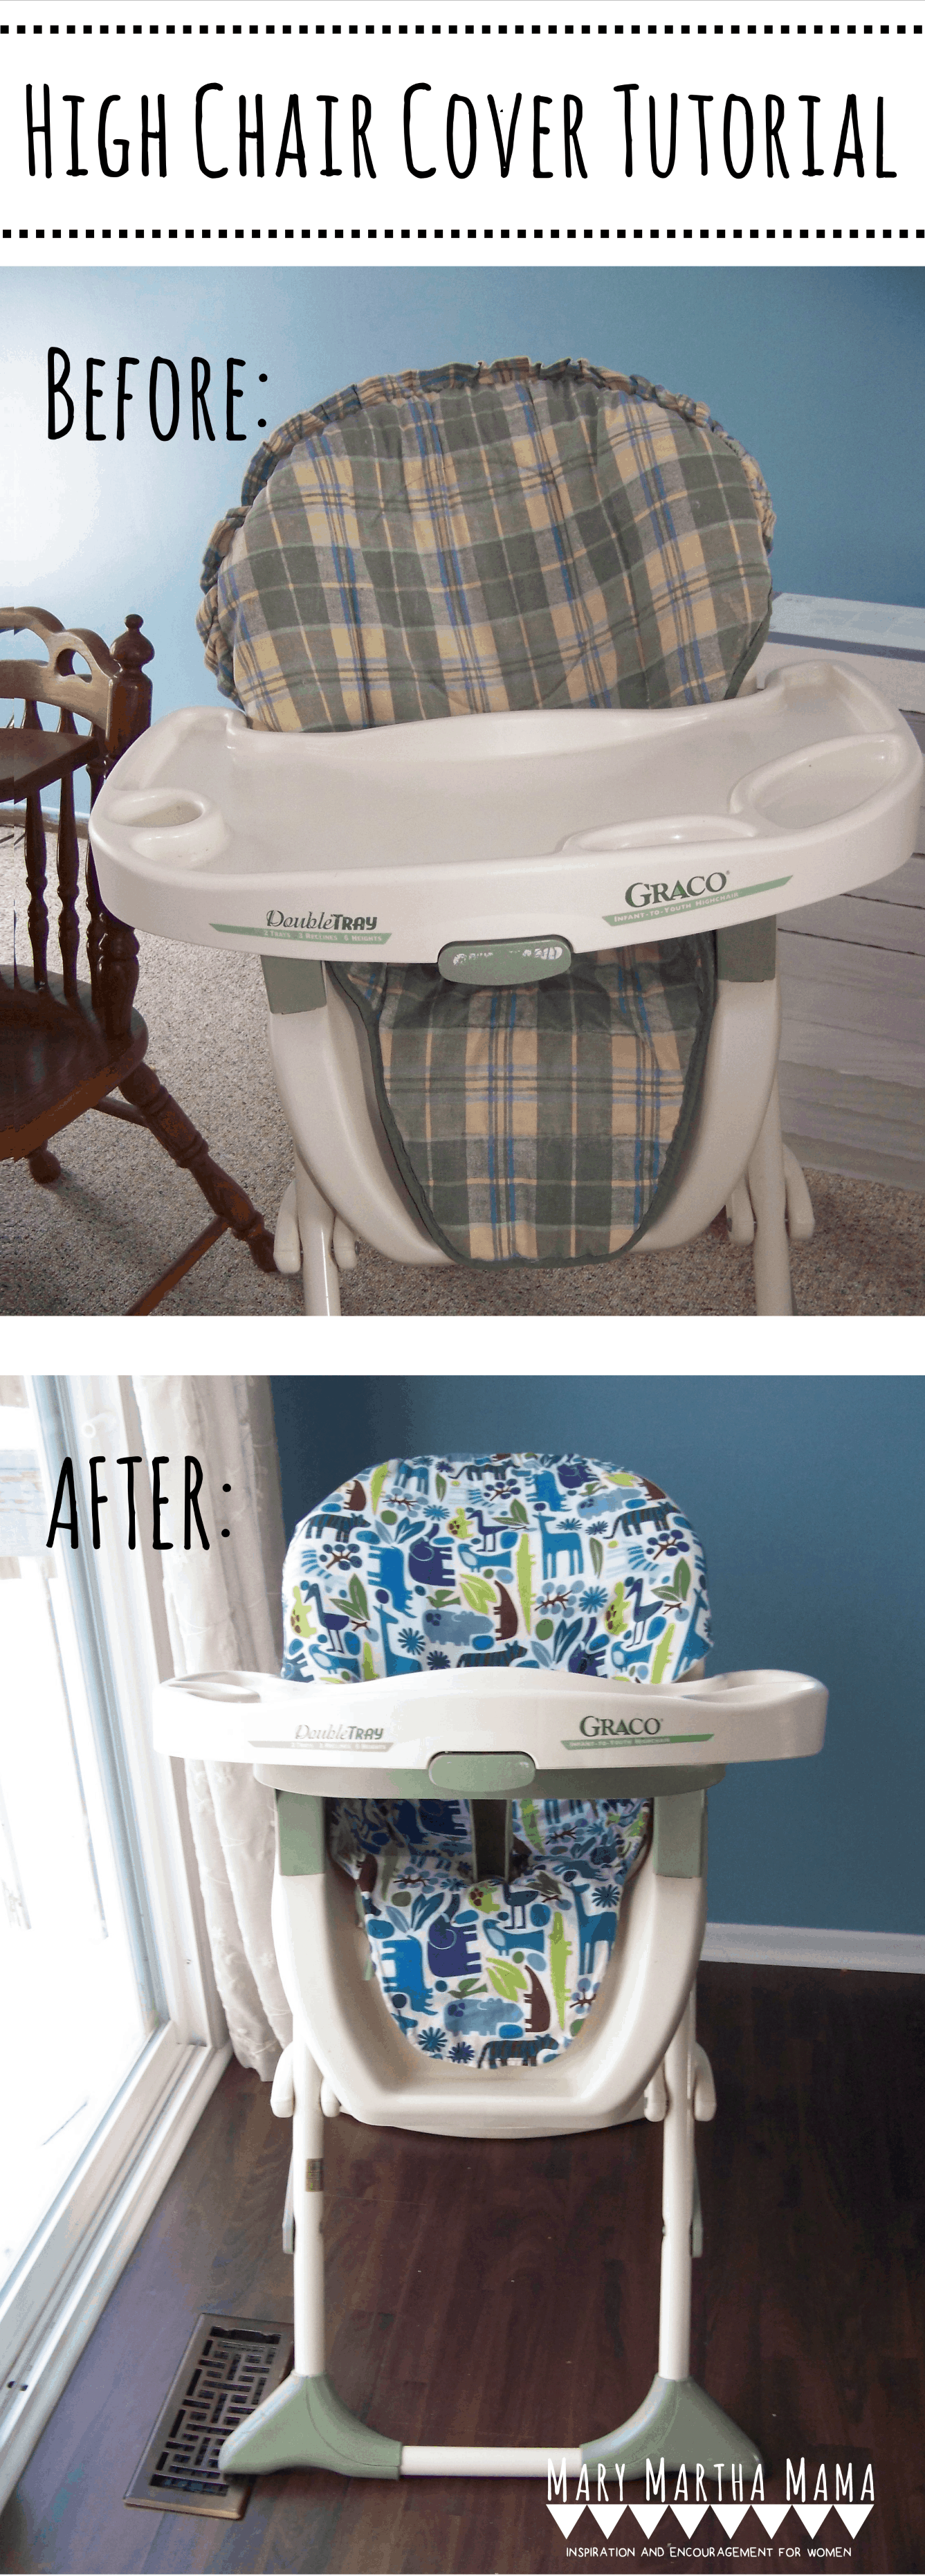 Incredible Diy High Chair Cover Tutorial Mary Martha Mama Ocoug Best Dining Table And Chair Ideas Images Ocougorg